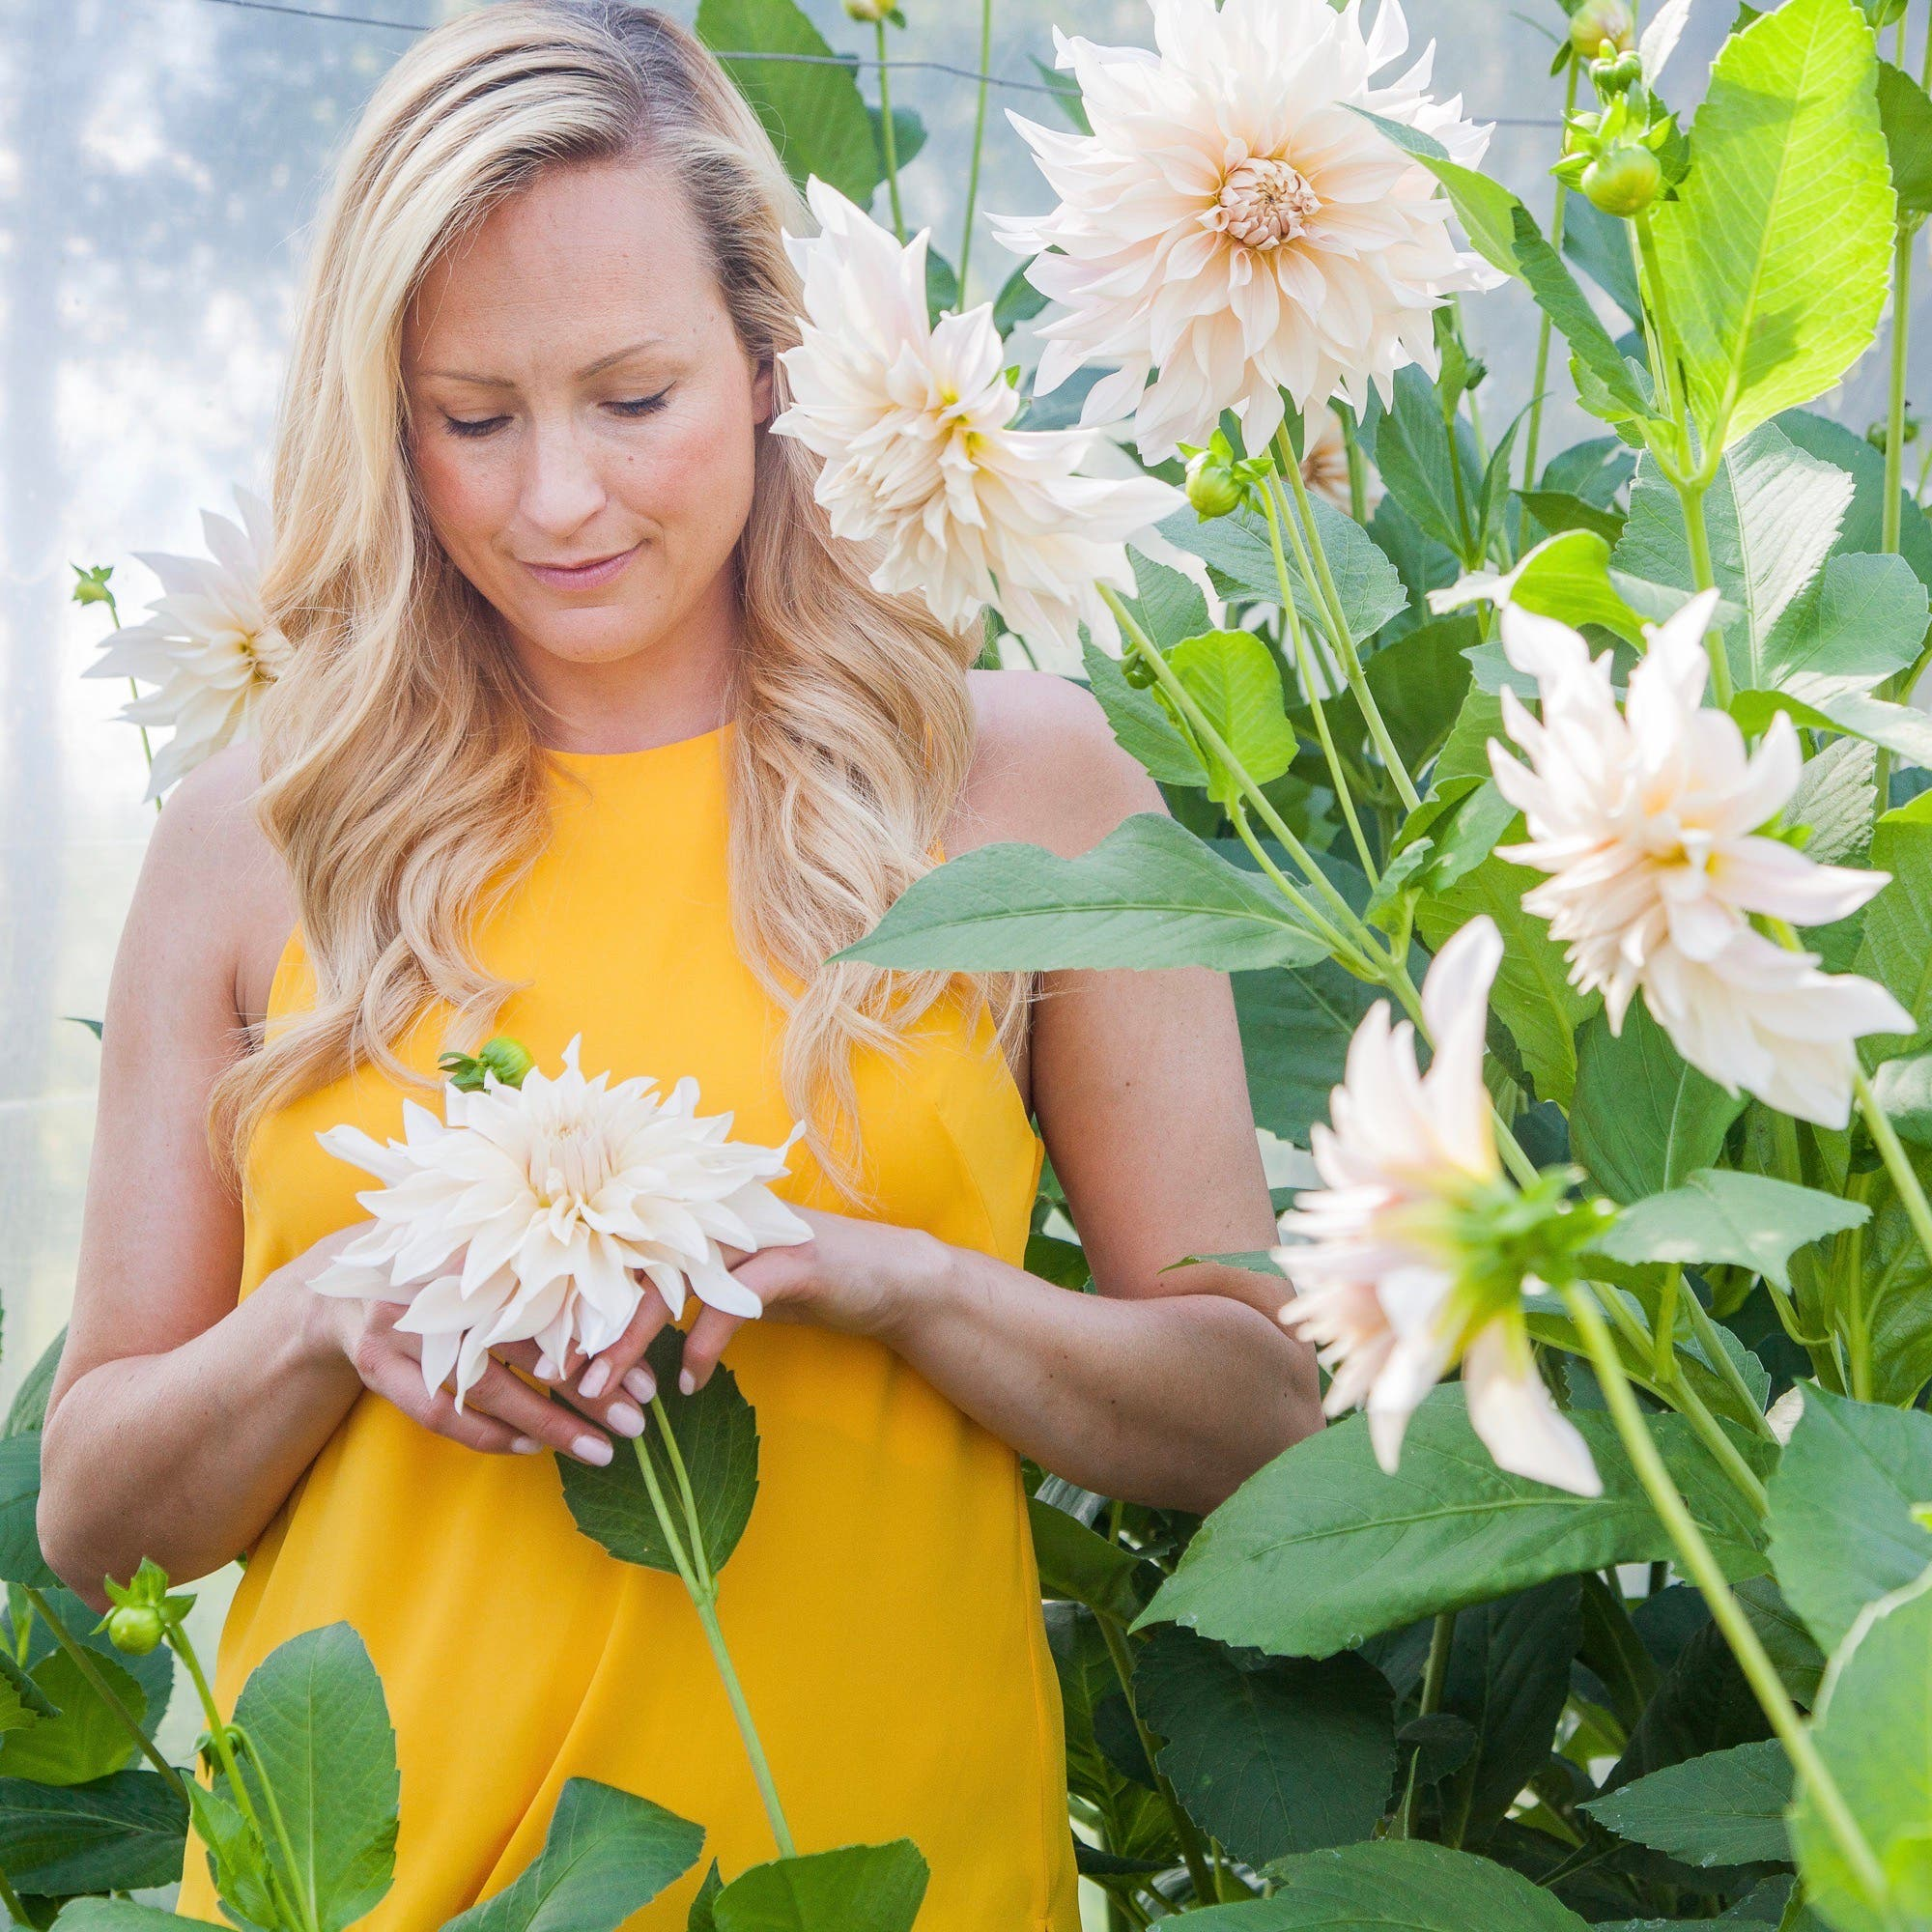 Garden designer Leonie Cornelius with her dinner plate dahlias in a polytunnell wearing a yellow top